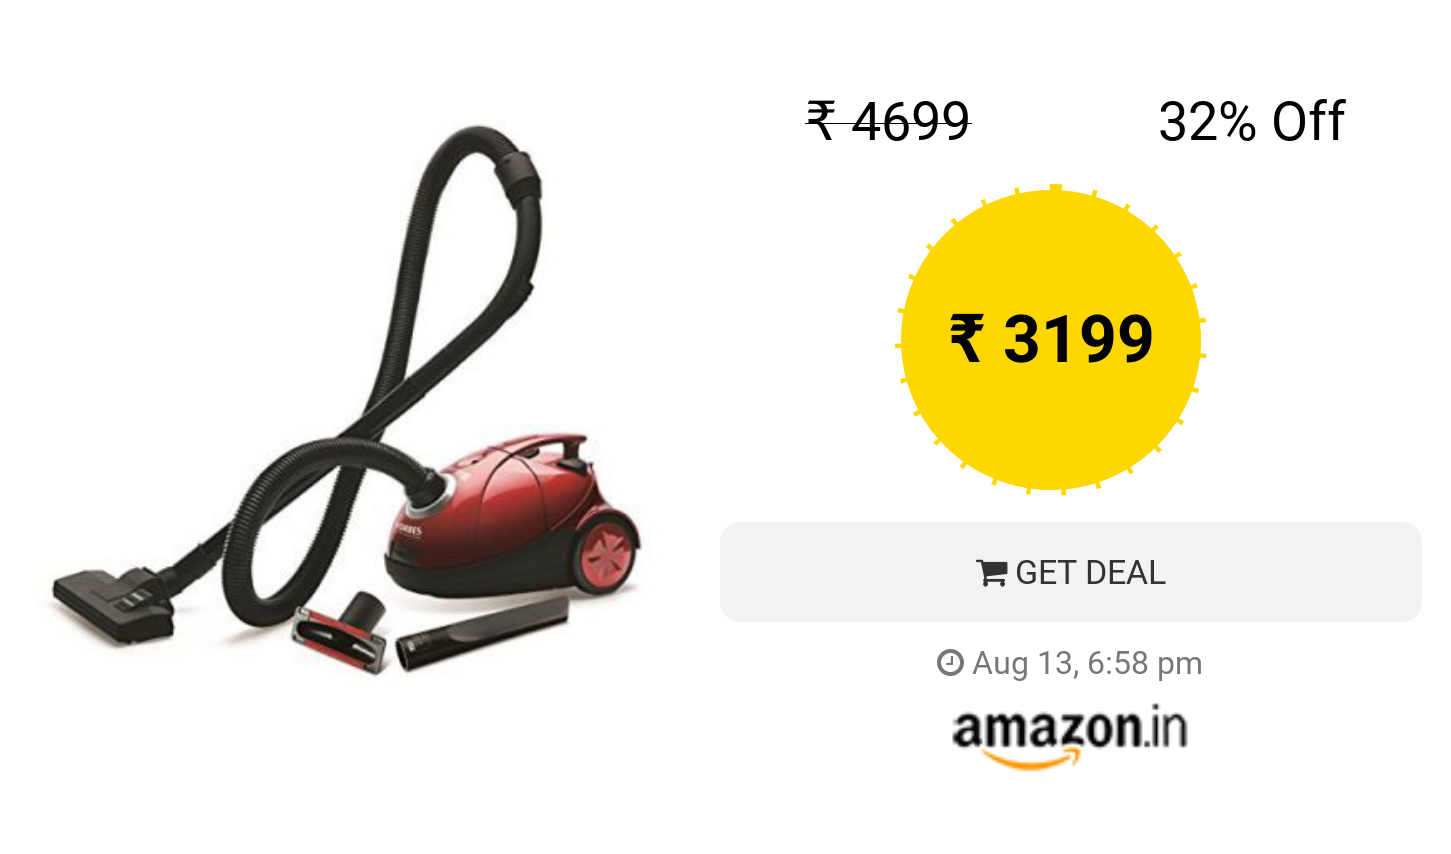 Eureka Forbes Quick Clean Dx 1200 Watt Vacuum Cleaner Red With Free Dust Bags Quick Cleaning Vacuum Cleaner Eureka